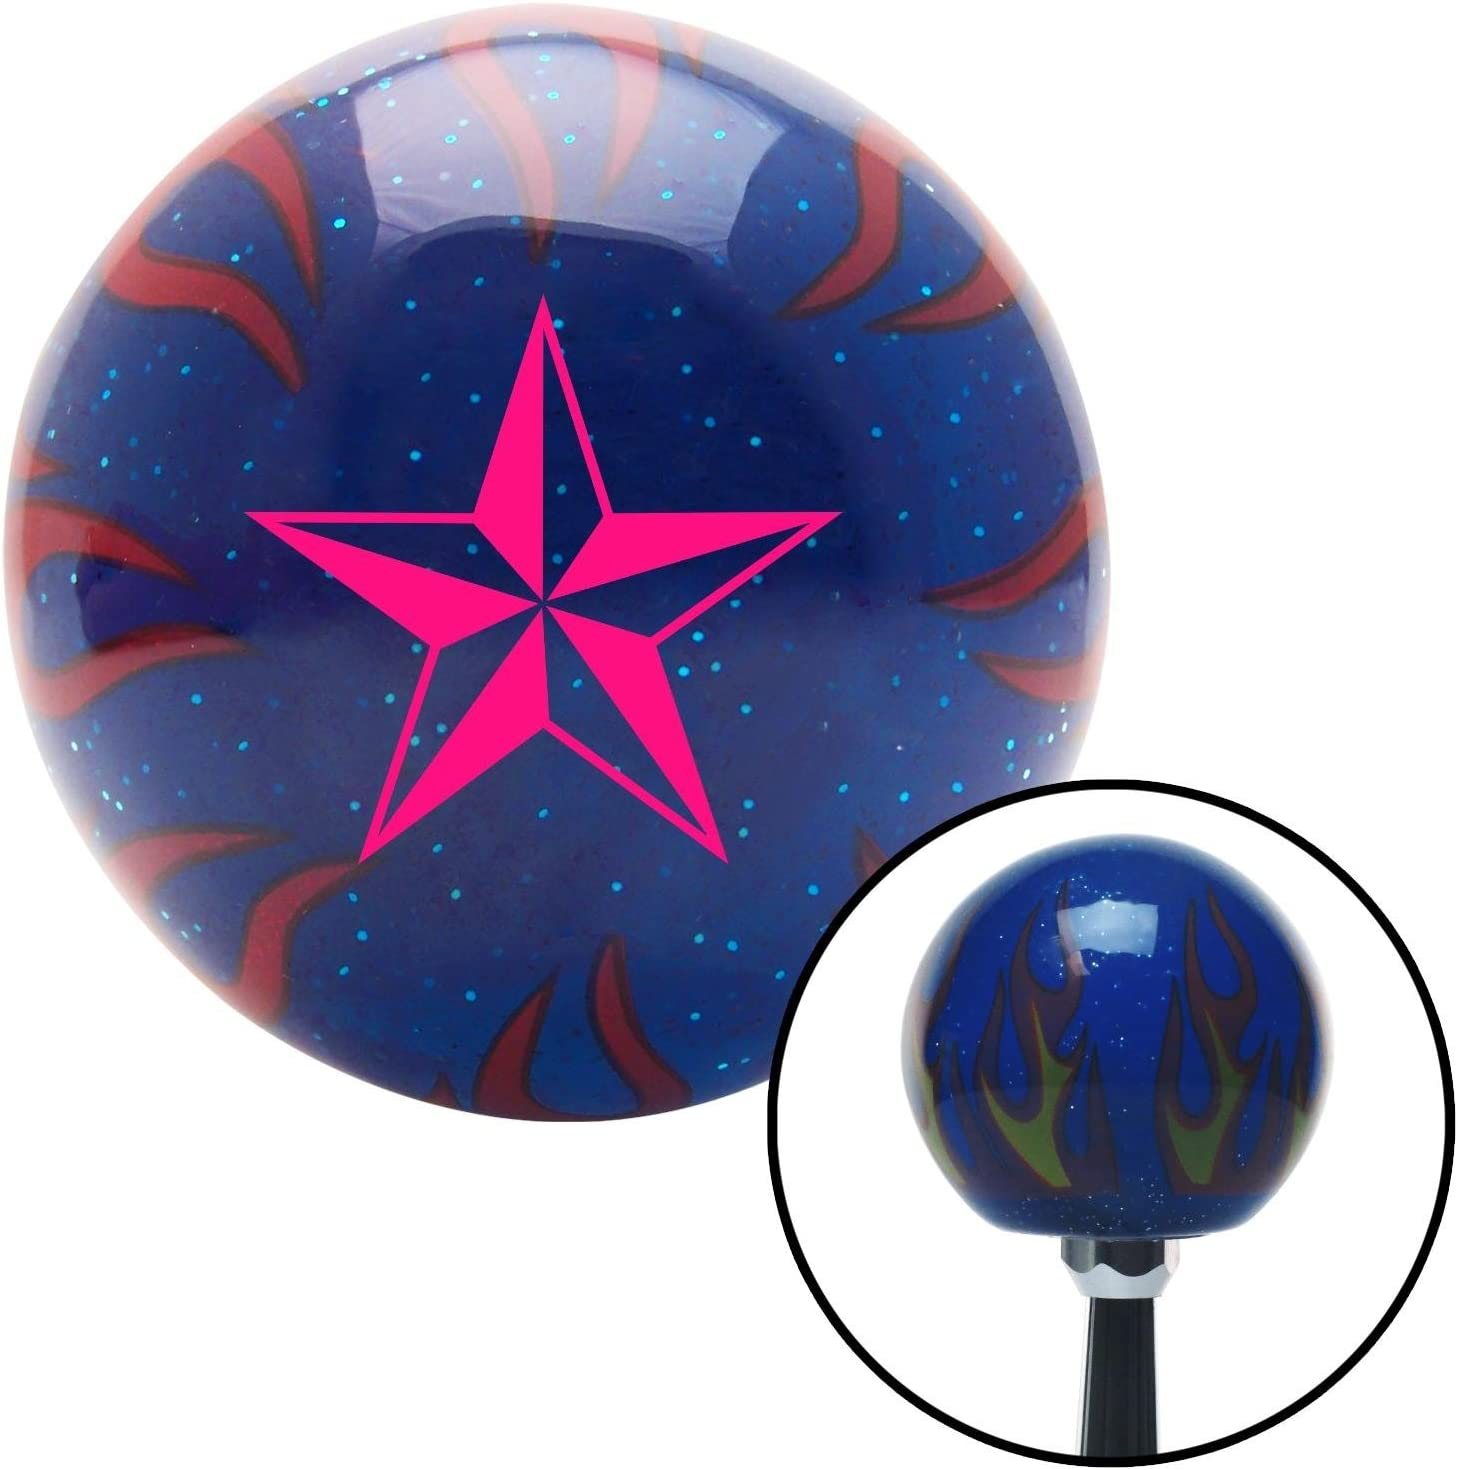 American Shifter 247902 Blue Flame Metal Flake Shift Knob with M16 x 1.5 Insert Pink Chinese Symbol #2